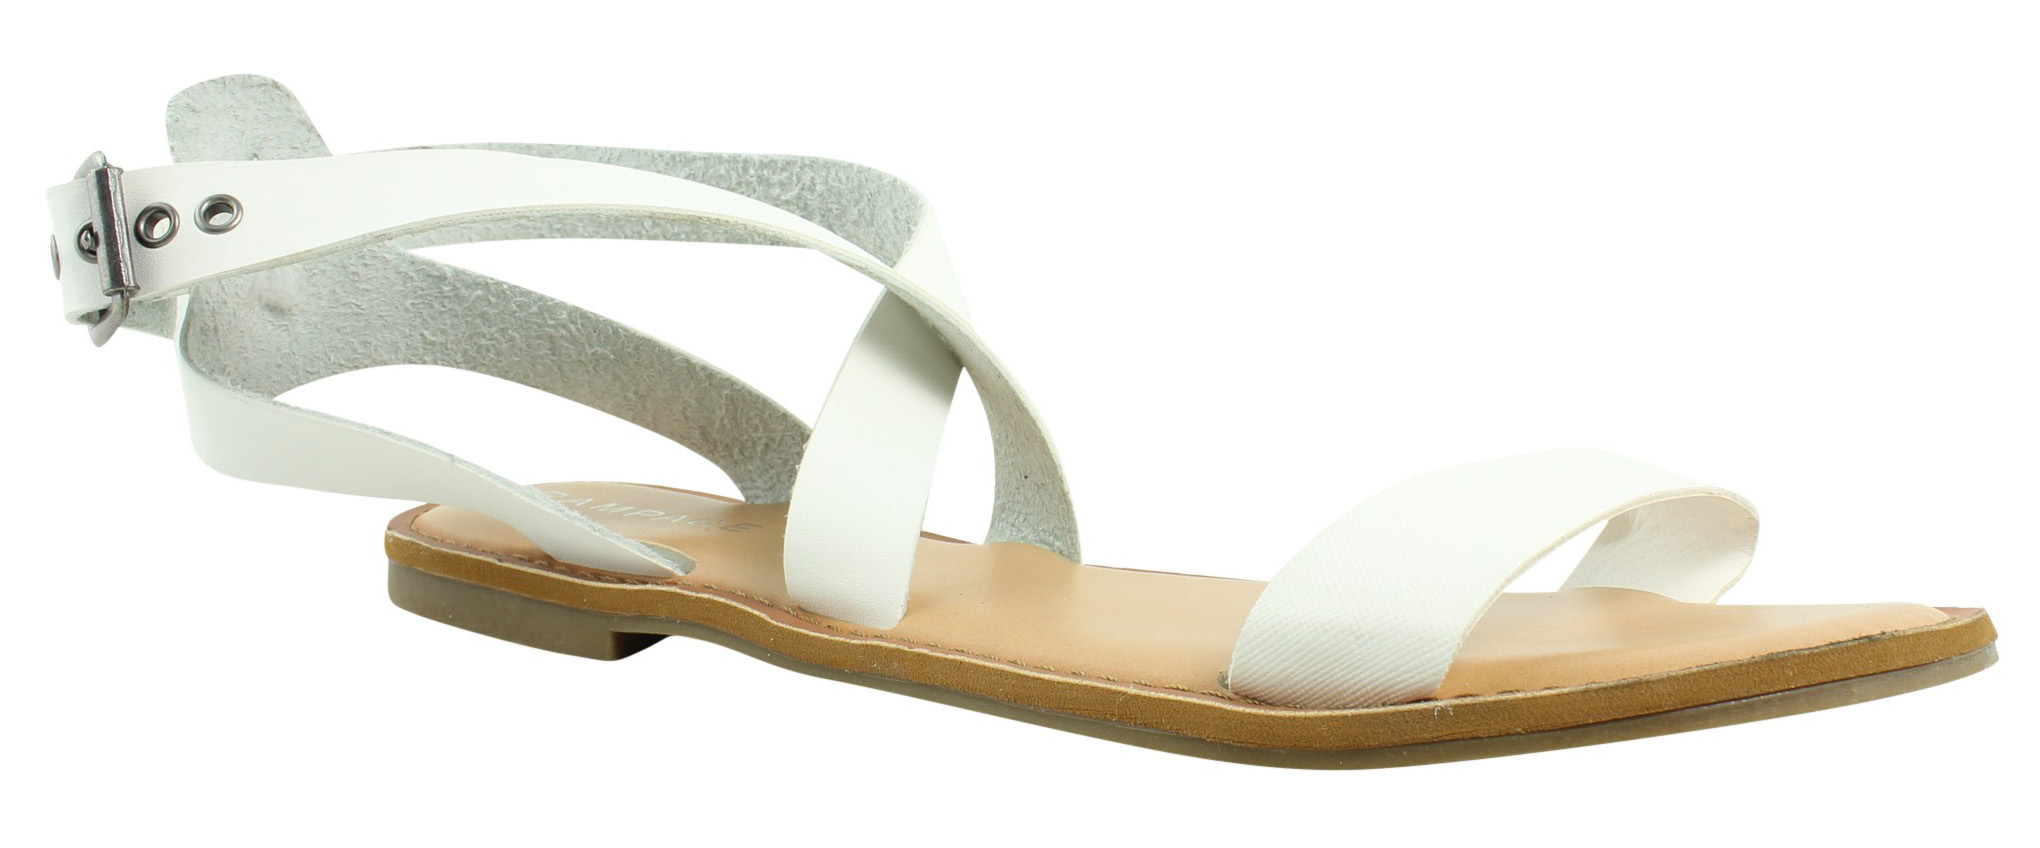 Details about Rampage Womens White Ankle Strap Sandals Size 11 (379978) a6589a4a6